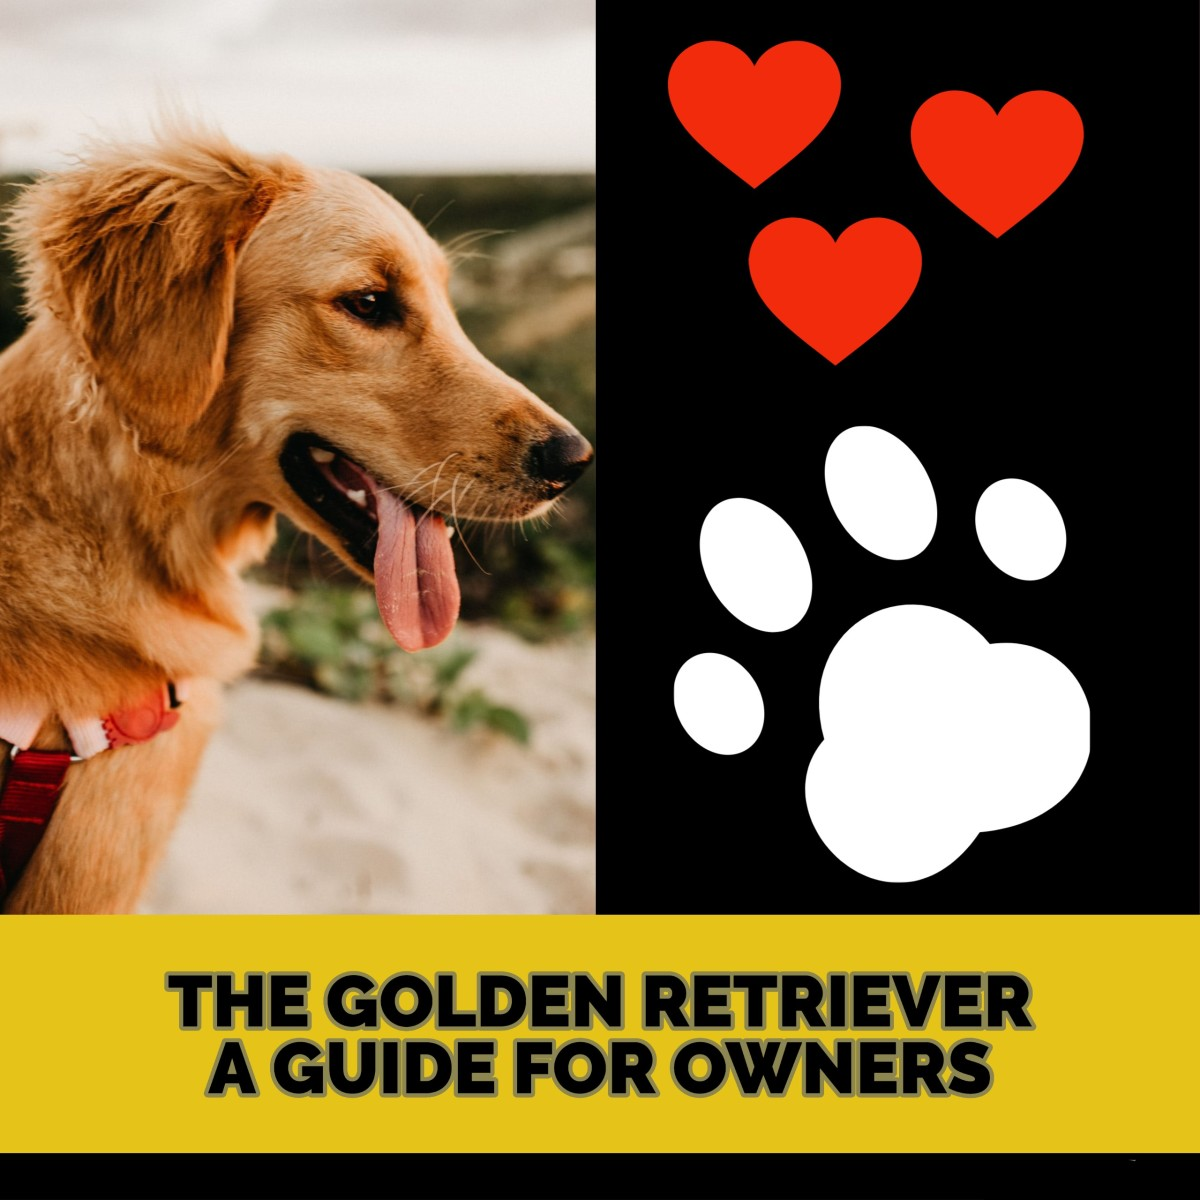 The Golden Retriever: A Guide for Owners